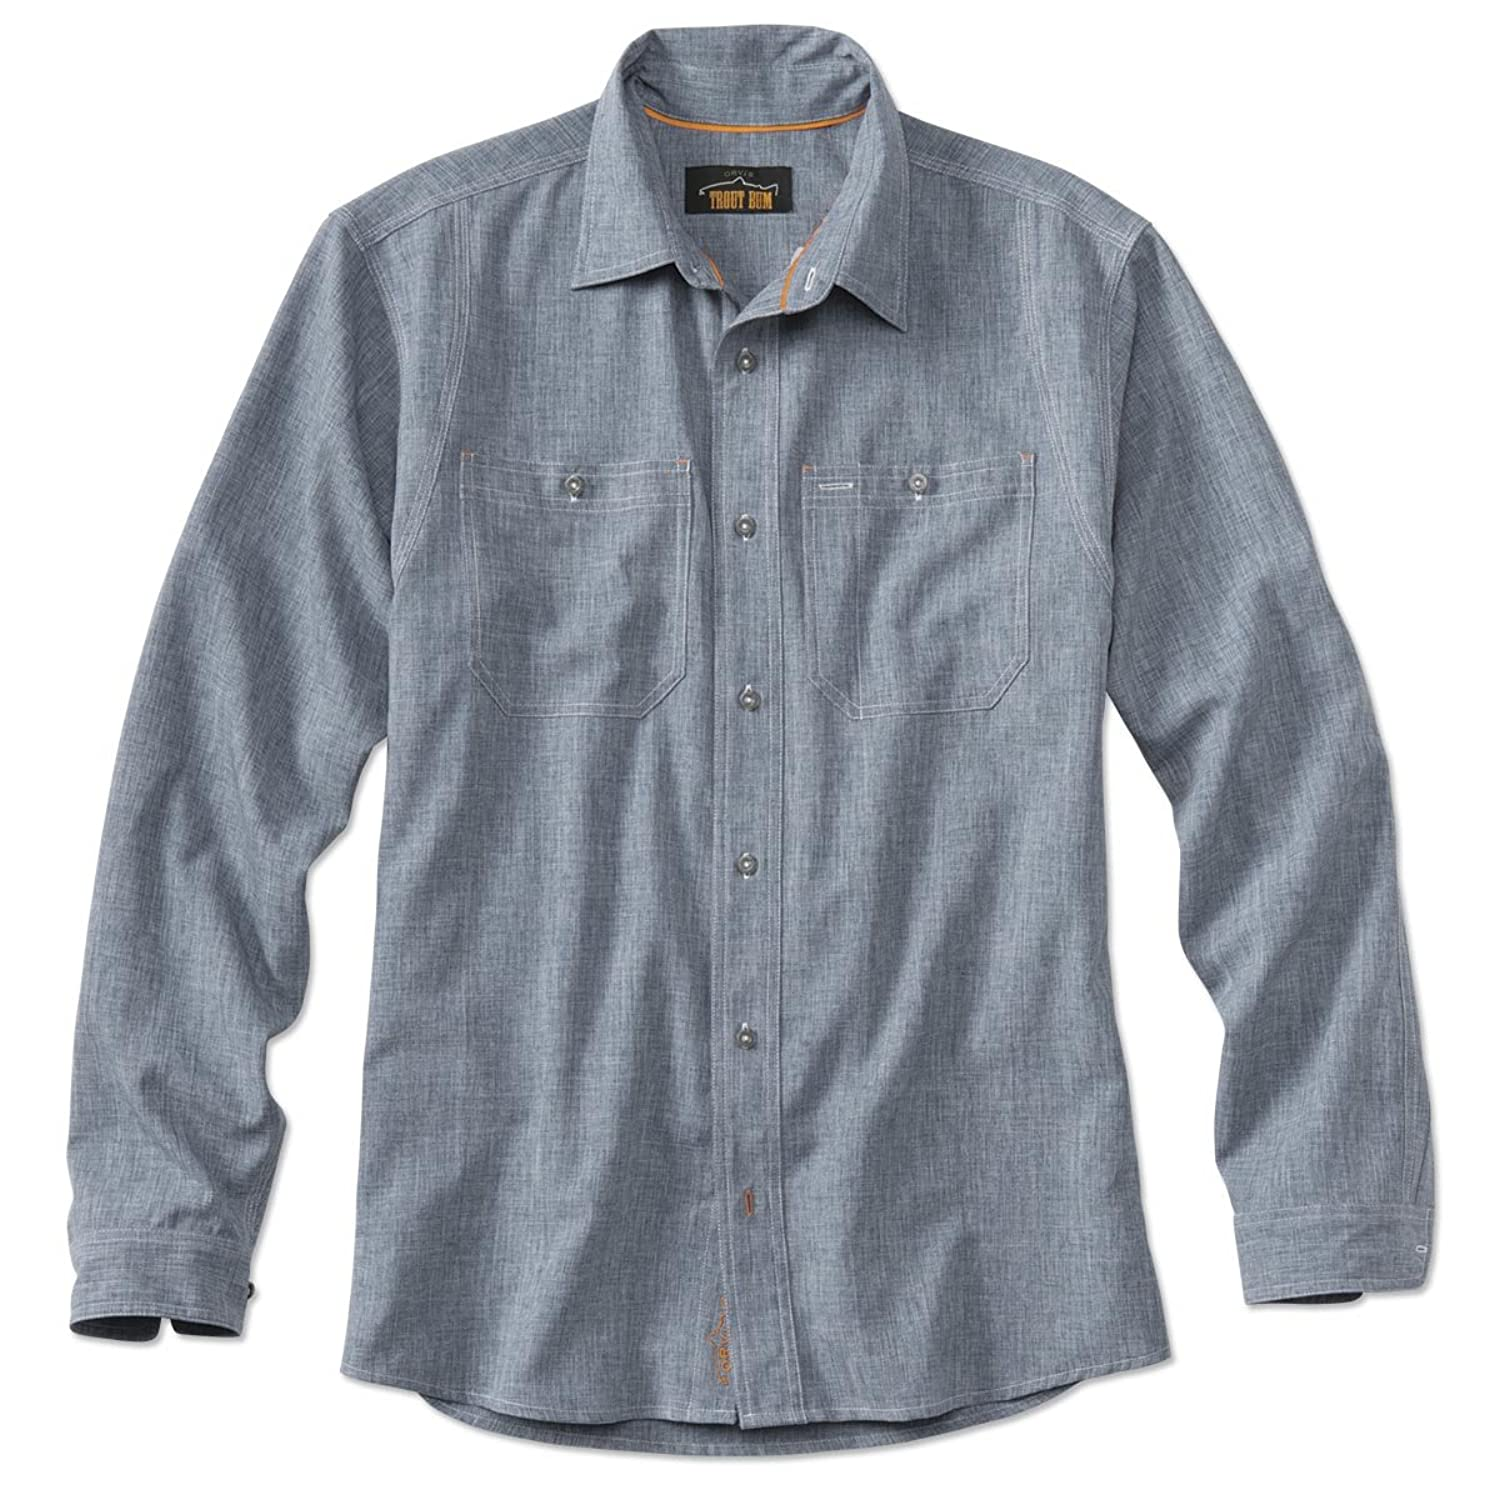 1920s Men's Dress Shirts Orvis Tech Chambray Work Shirt $89.00 AT vintagedancer.com